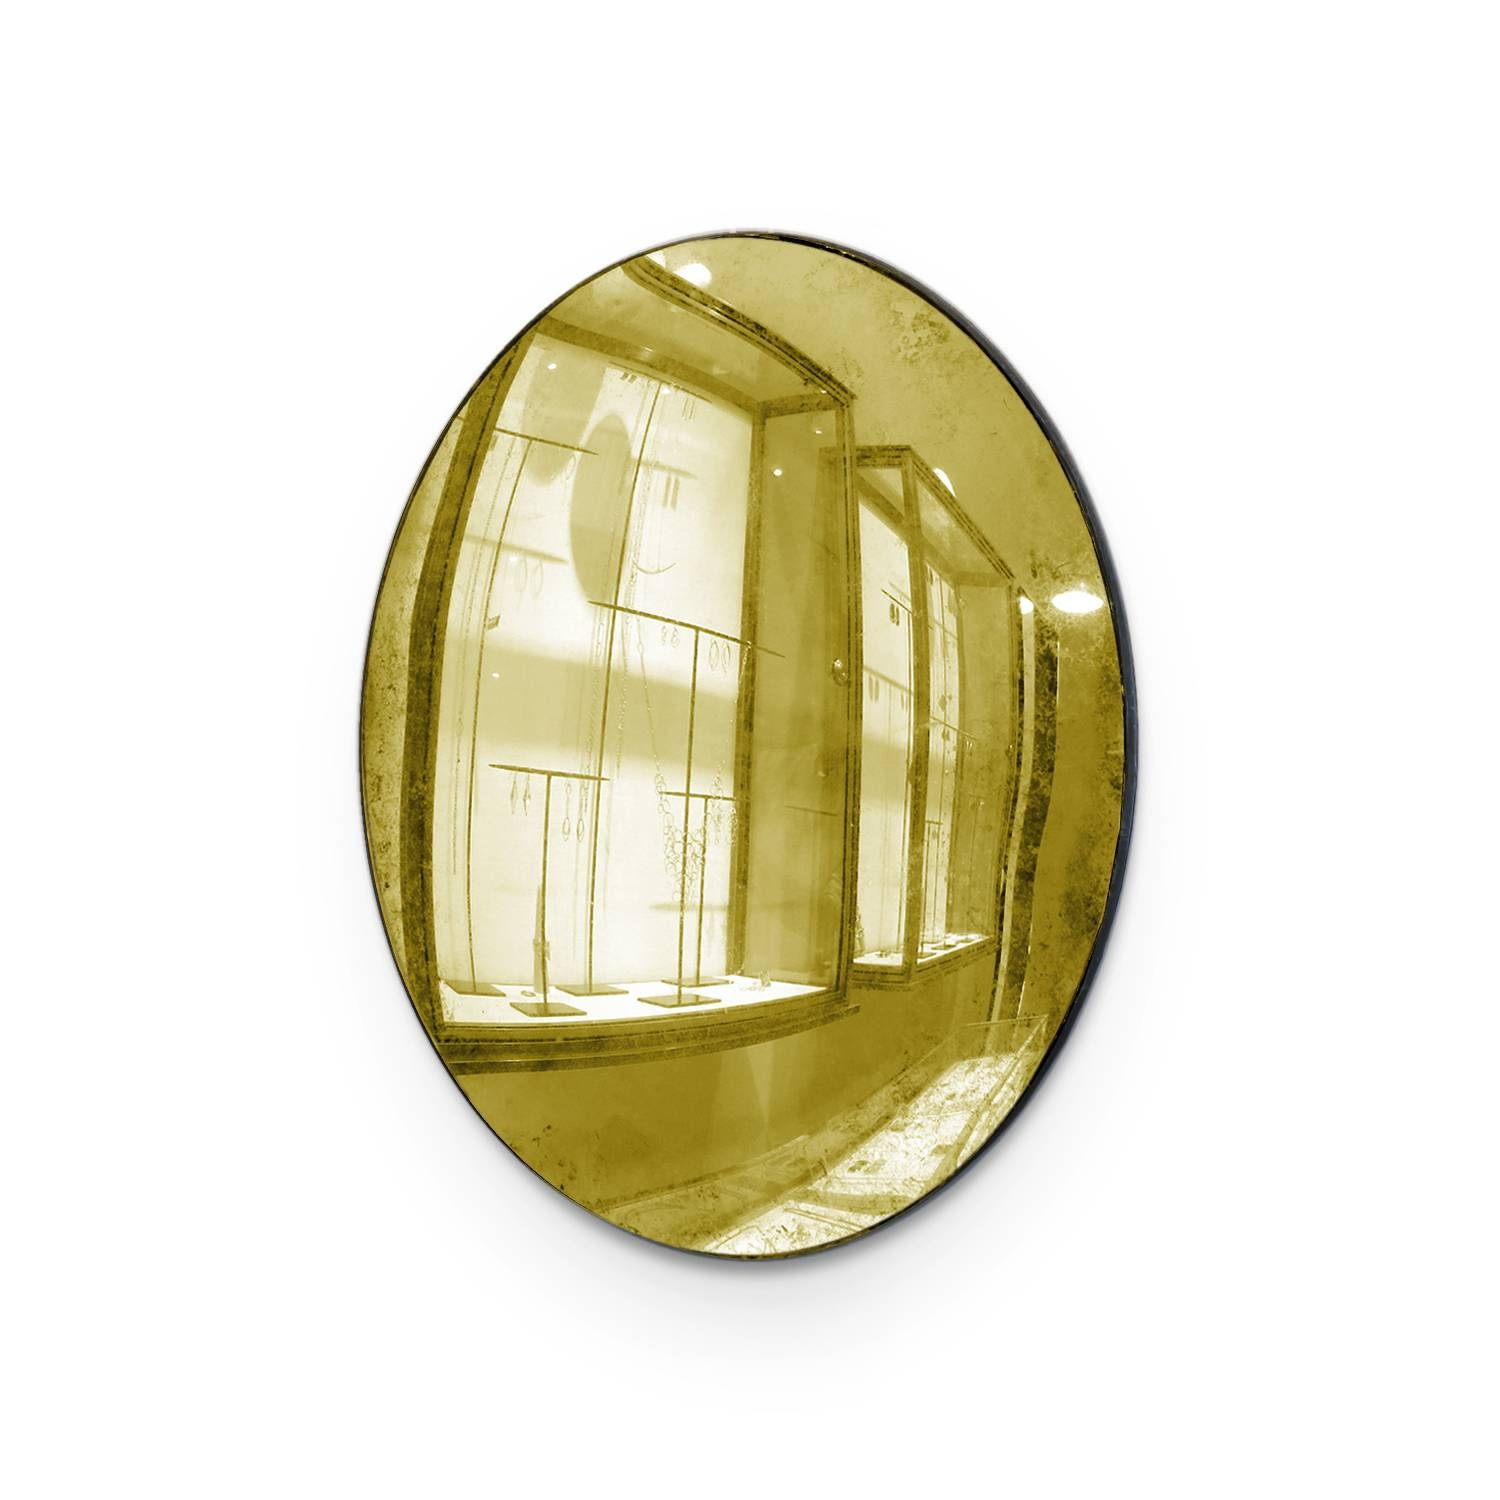 Maureen Fullam 9 X 12 Inch Oval Convex Gold Leafed Mirror - August regarding Small Convex Mirrors (Image 10 of 25)